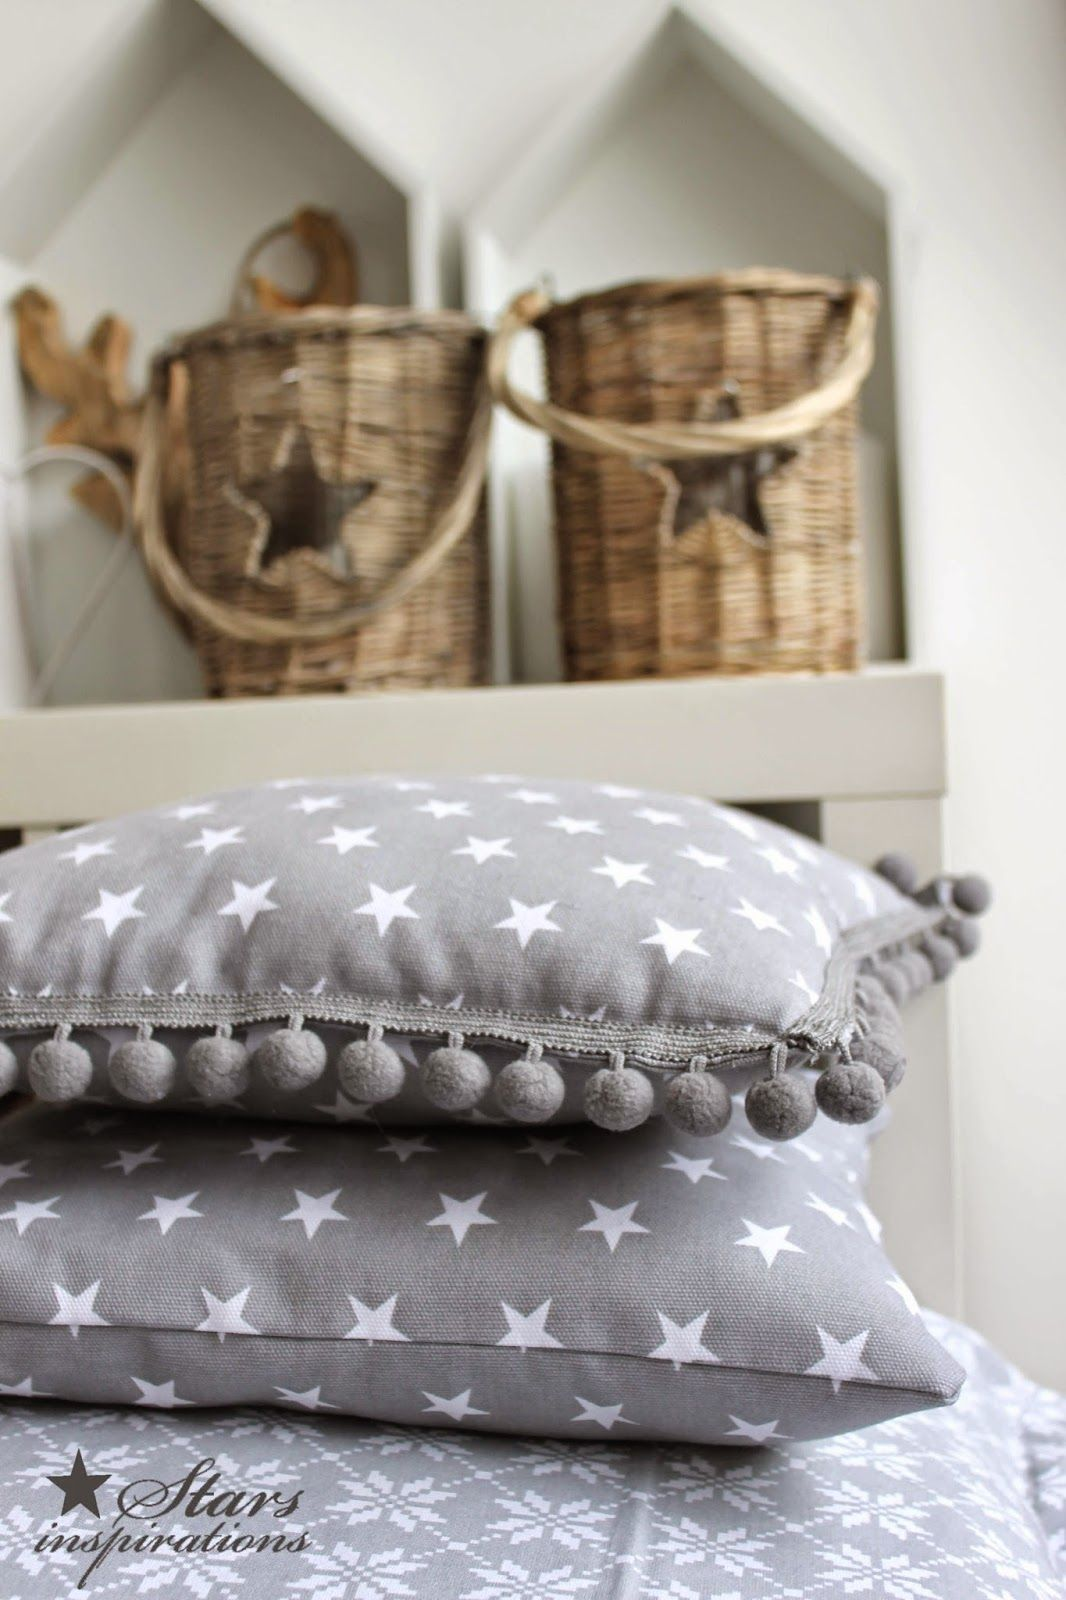 stars inspirations: 2014 CHRISTAMS DECORATIONS - SEWING IDEAS PART 1